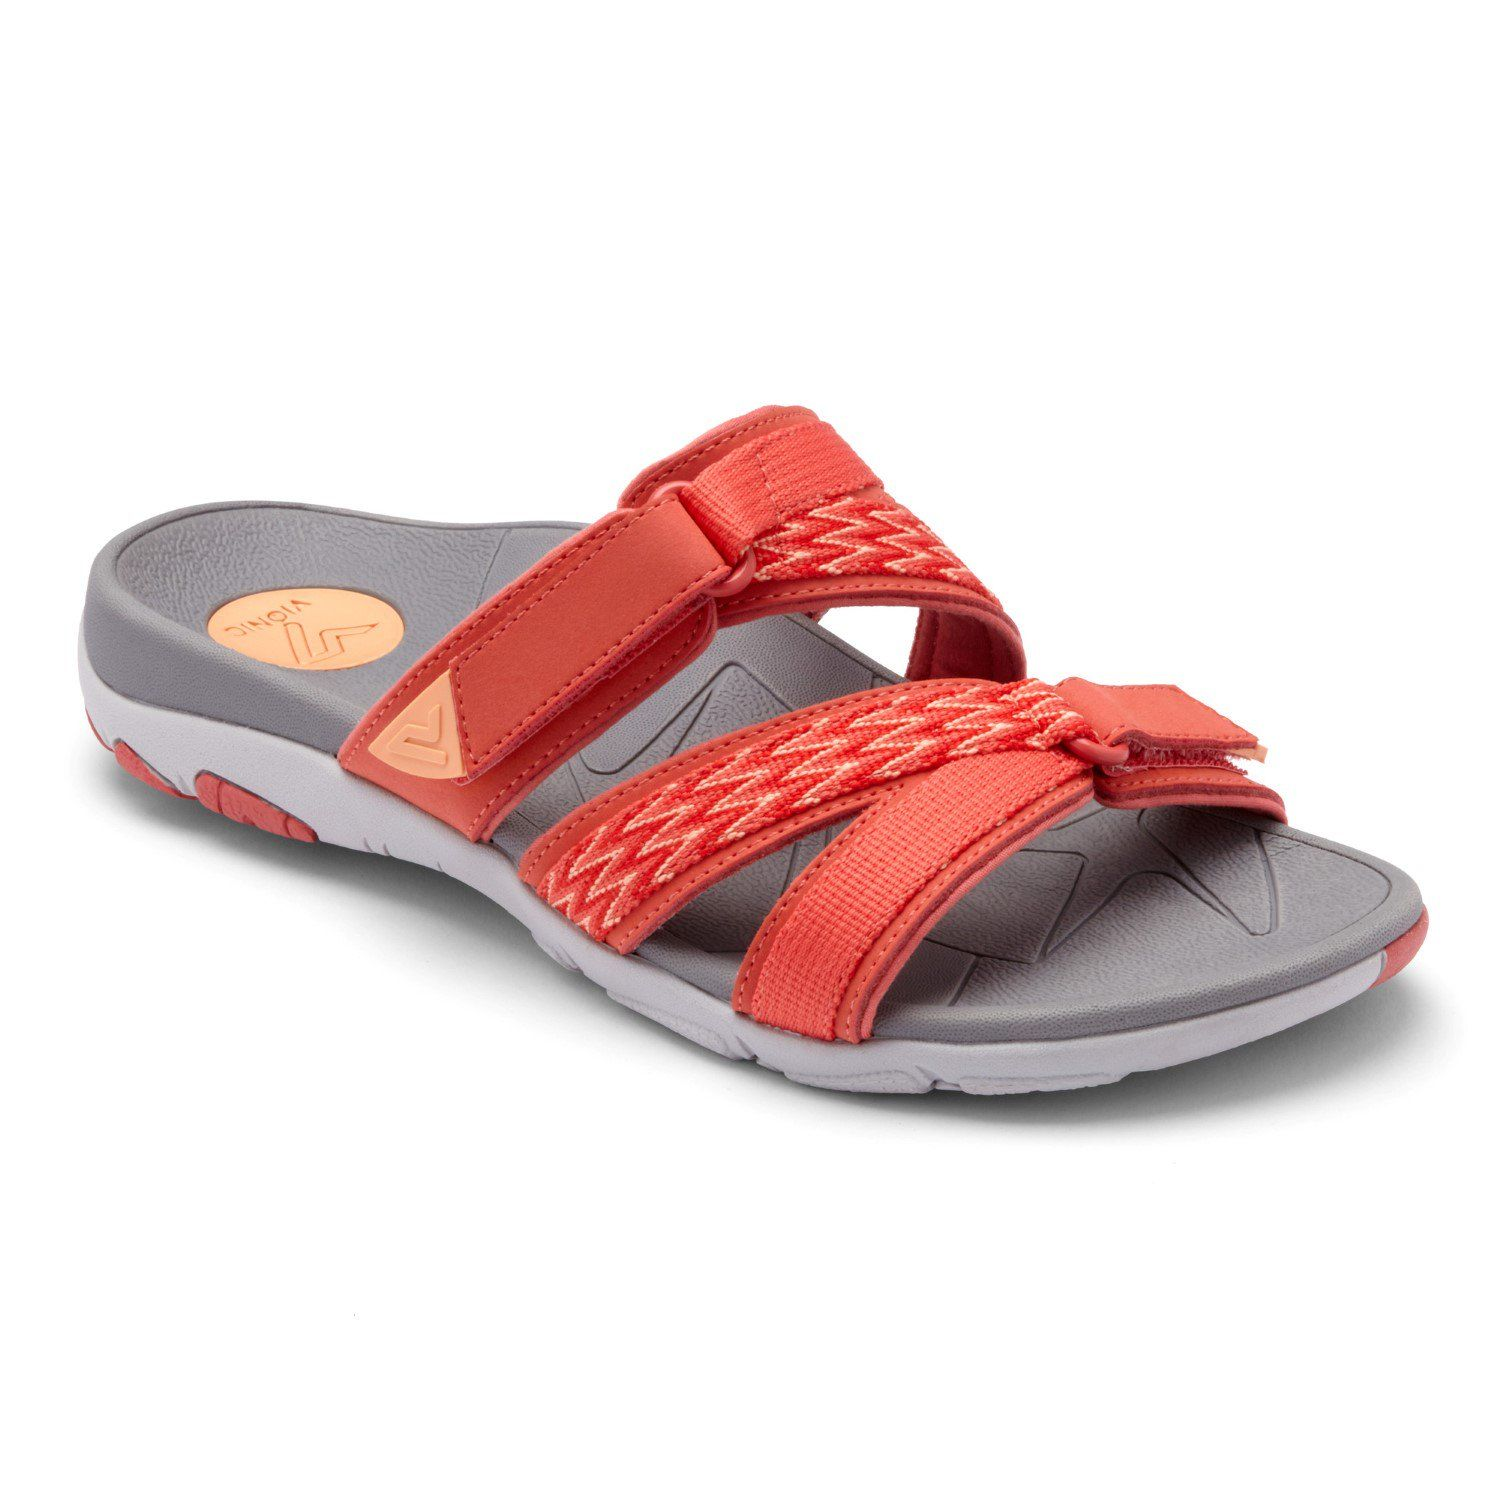 comforter com shop nike style slide steptorun womens product comfort ultra sandals